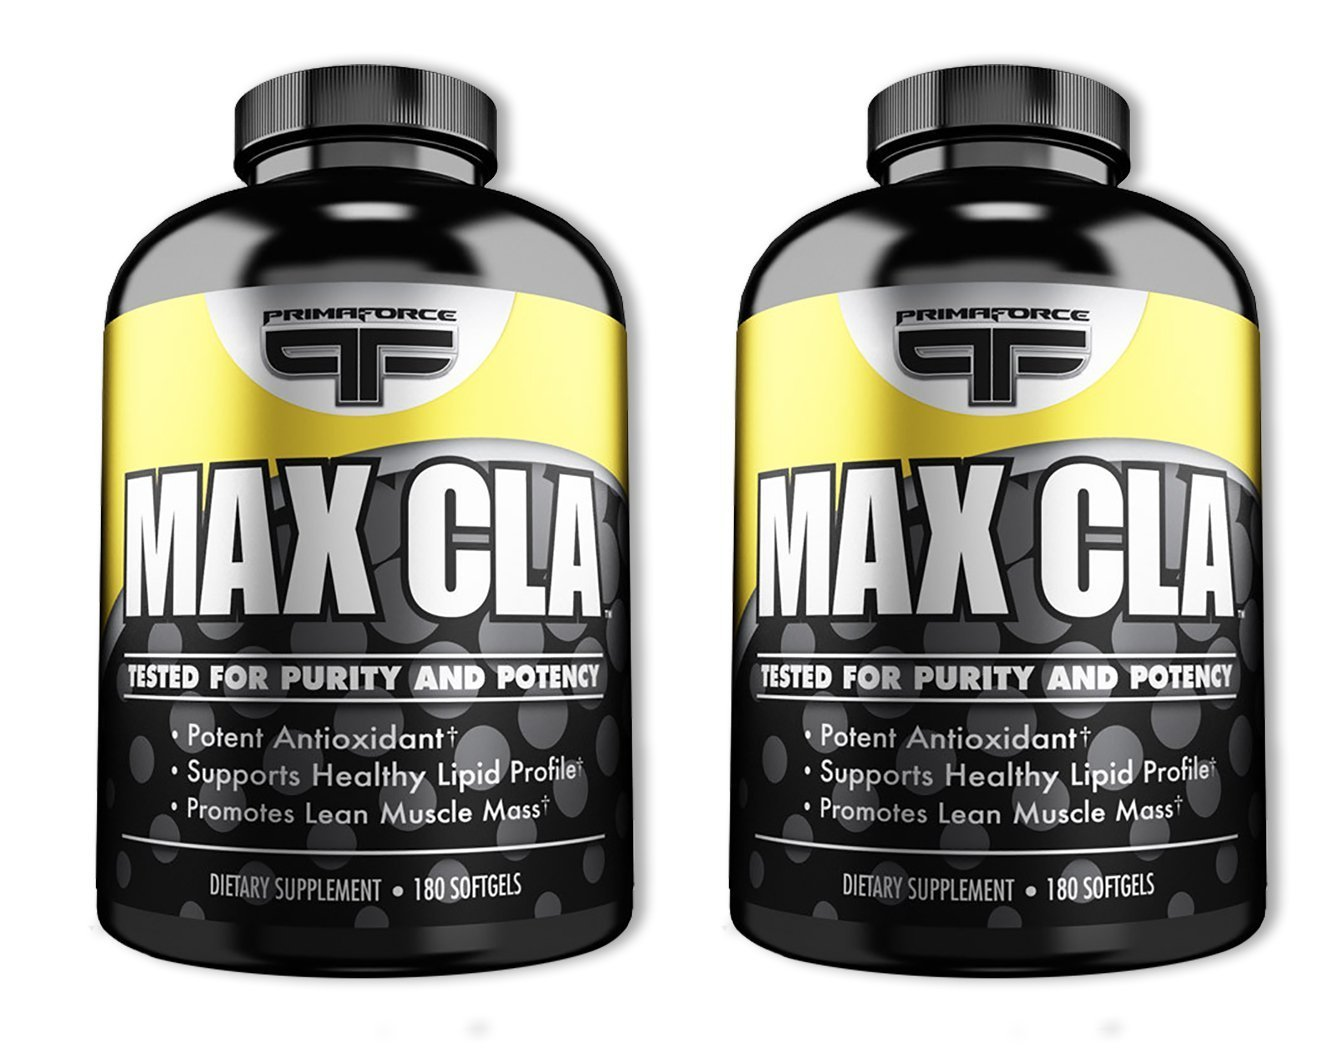 Primaforce Max CLA 180 Softgels [2 Pack]